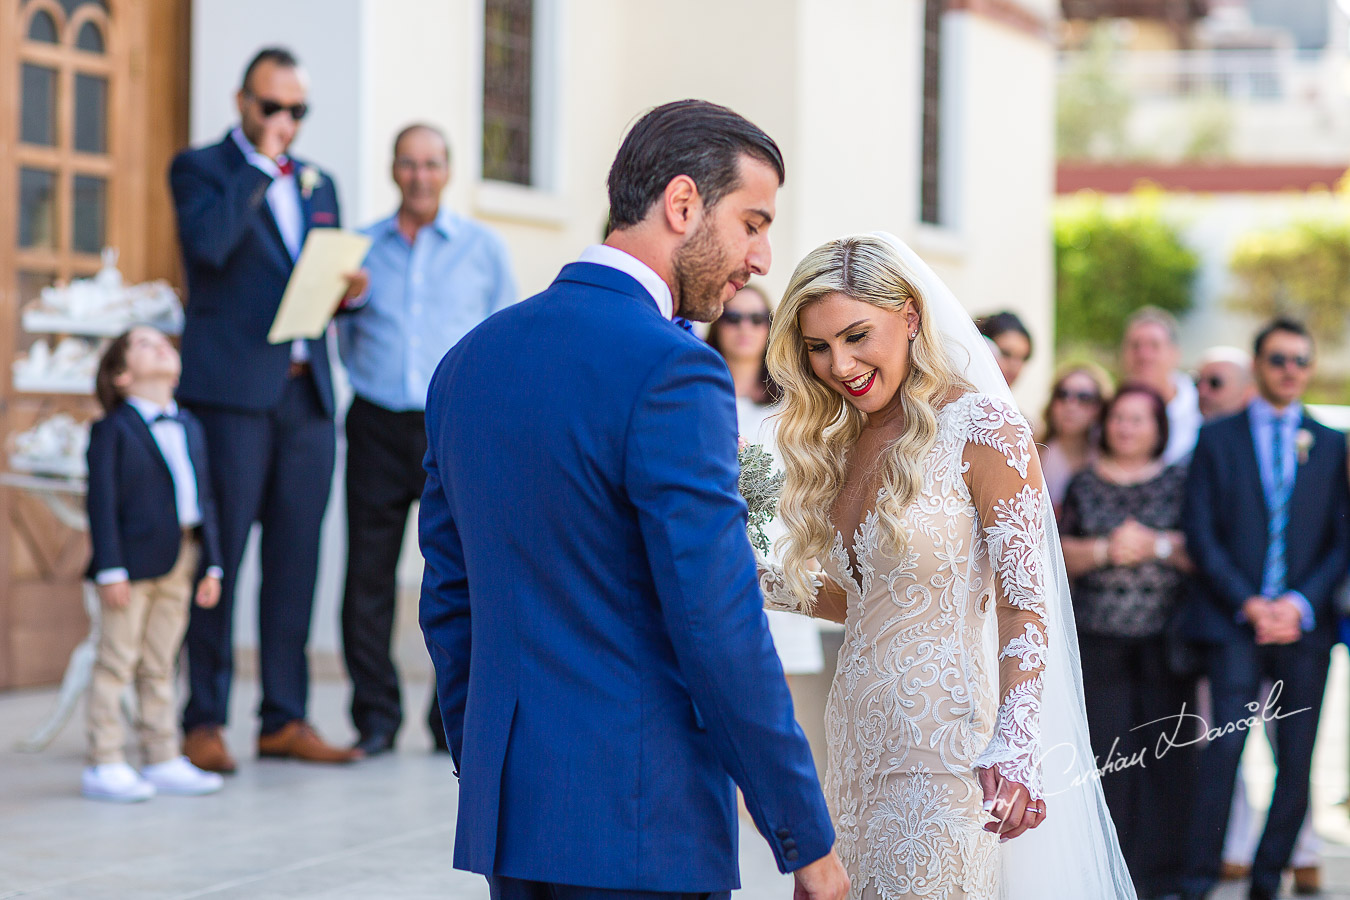 Moments before the church ceremony captured at an elegant and romantic wedding at Elias Beach Hotel by Cristian Dascalu.